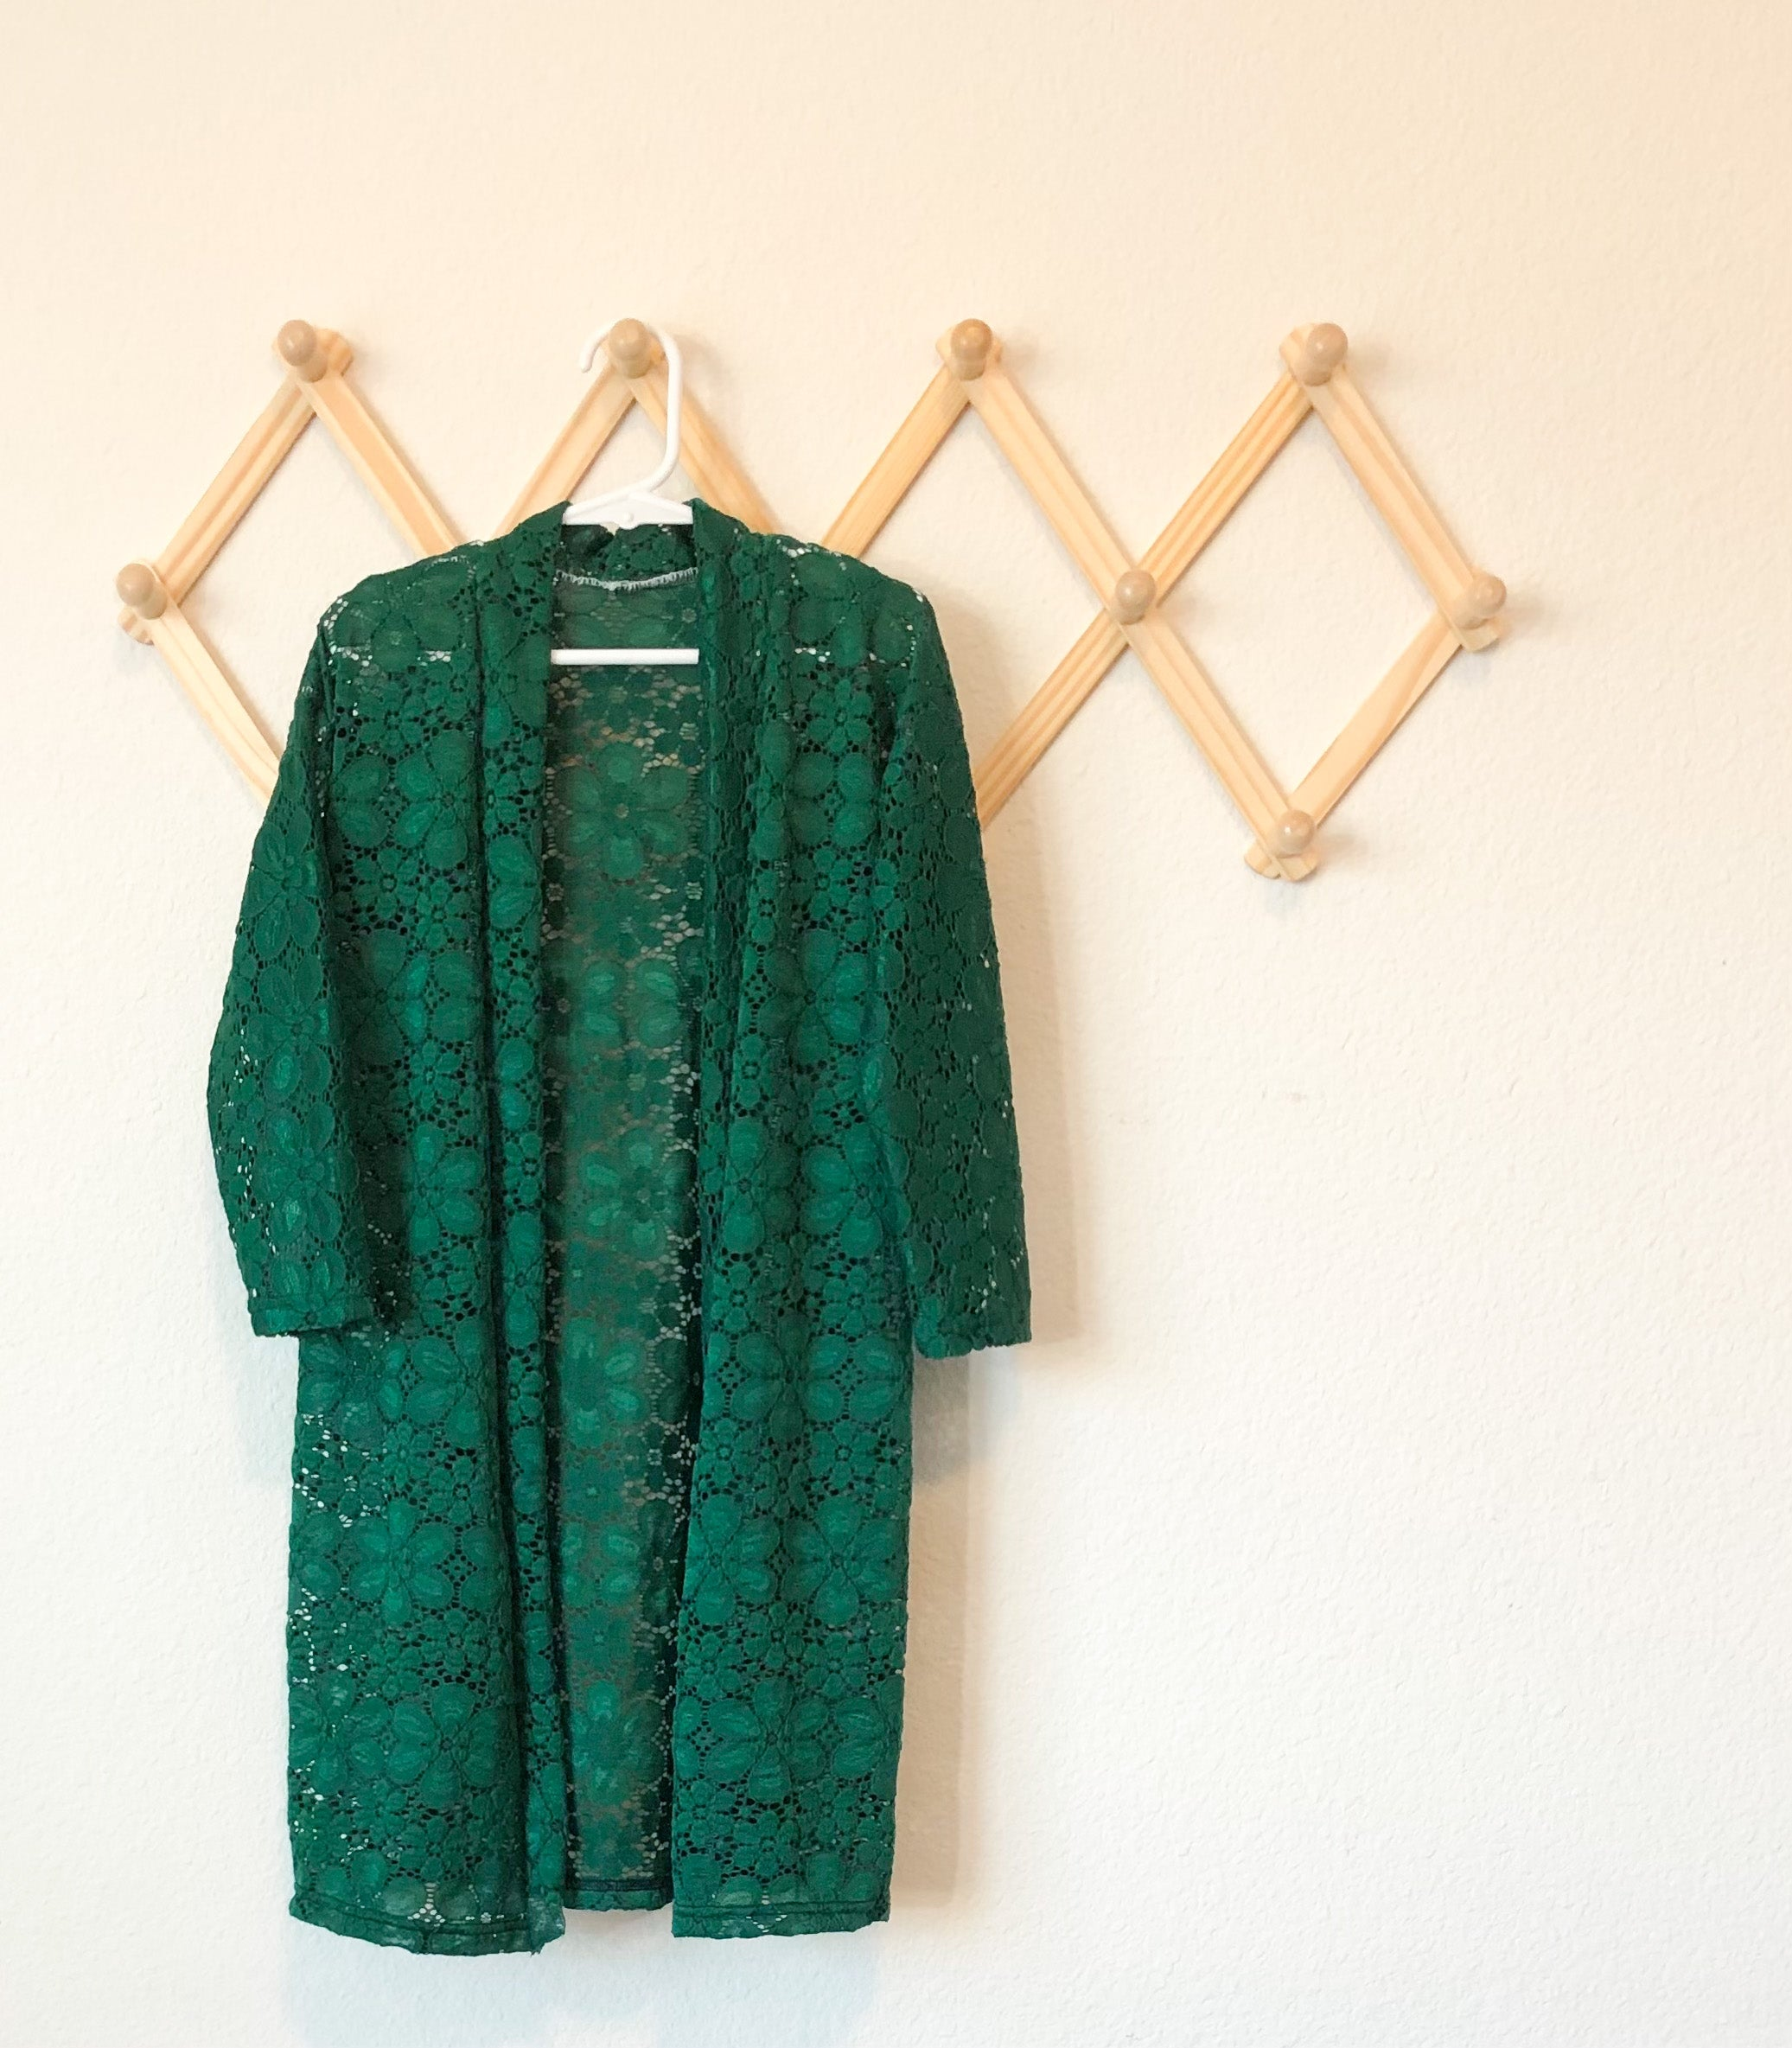 Duster: Green Lace Floral